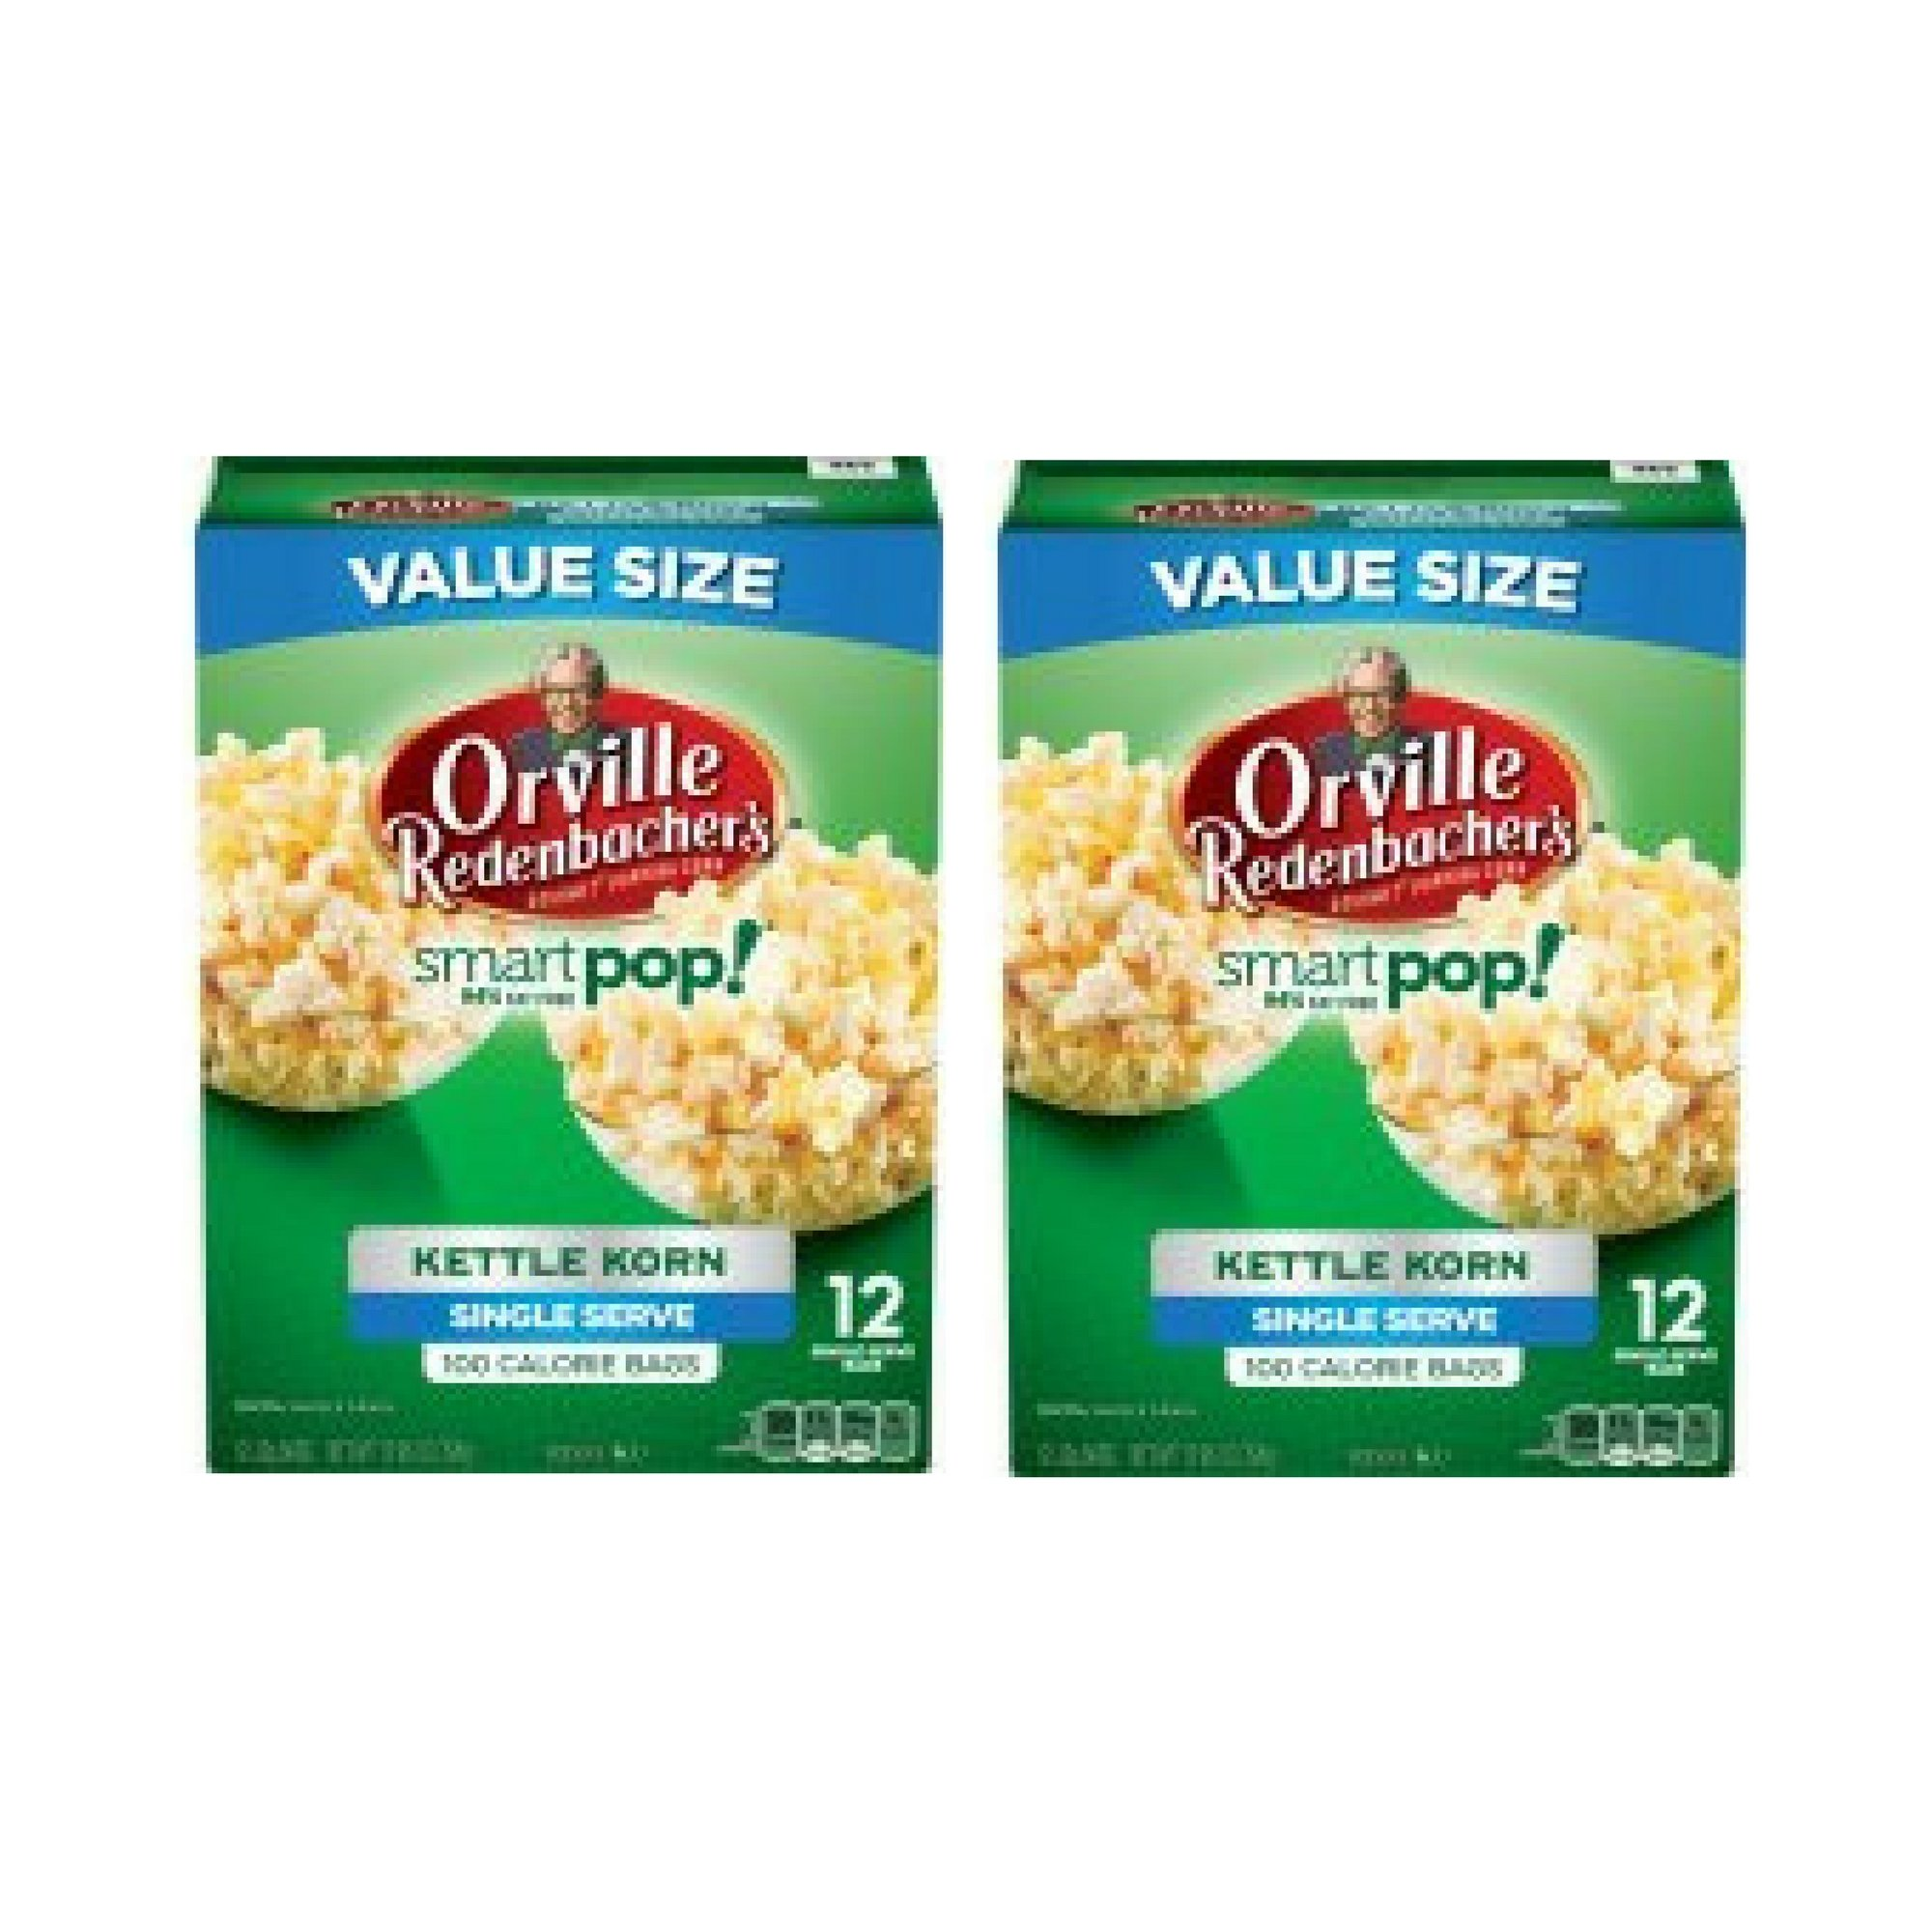 Orville Redenbacher's SmartPop! Kettle Korn Popcorn, Single Serve Bag, 12 Ct - 2 Packs